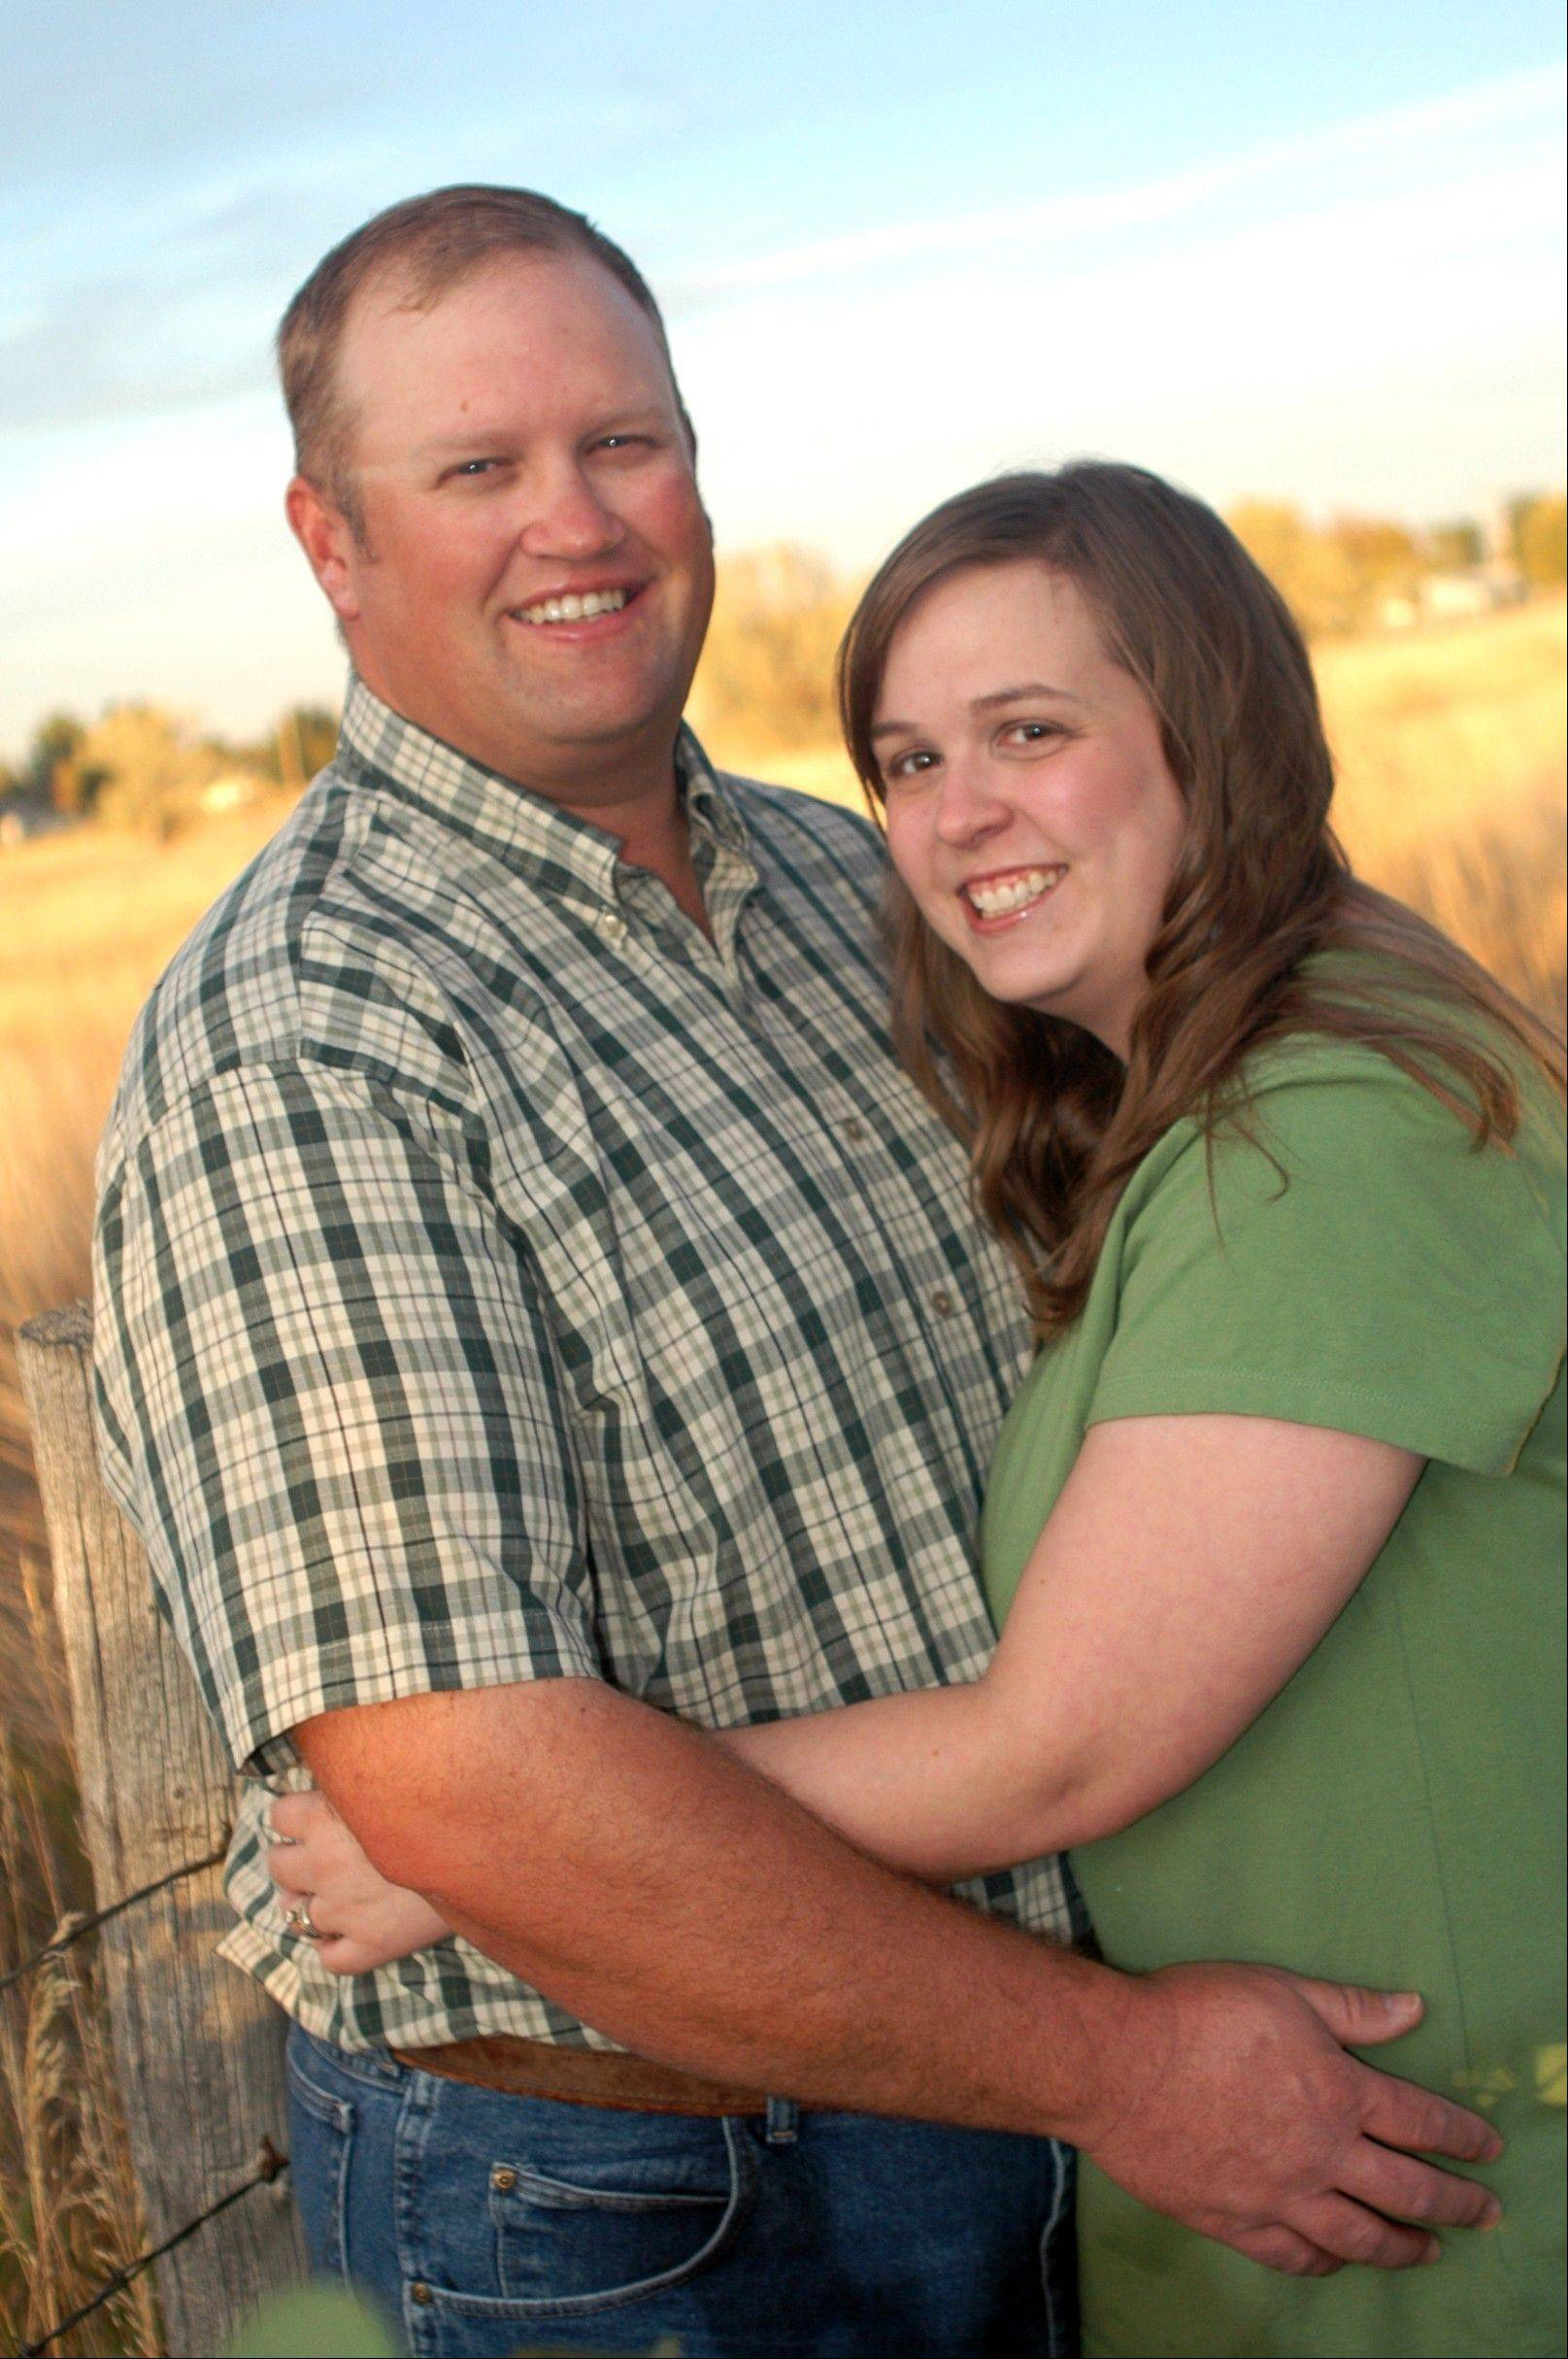 This September 2010 photo provided by Shalee Brown shows Richard B. Vest , left, and his wife Rebecca O. Vest in Rigby, Idaho. The Vests can't conceive children, or understand why Amy Slanina, who knew that they couldn't conceive, pretended to be pregnant and persuaded them to fly from Idaho to Pennsylvania five days after Christmas to ìadoptî a baby that didn't exist.